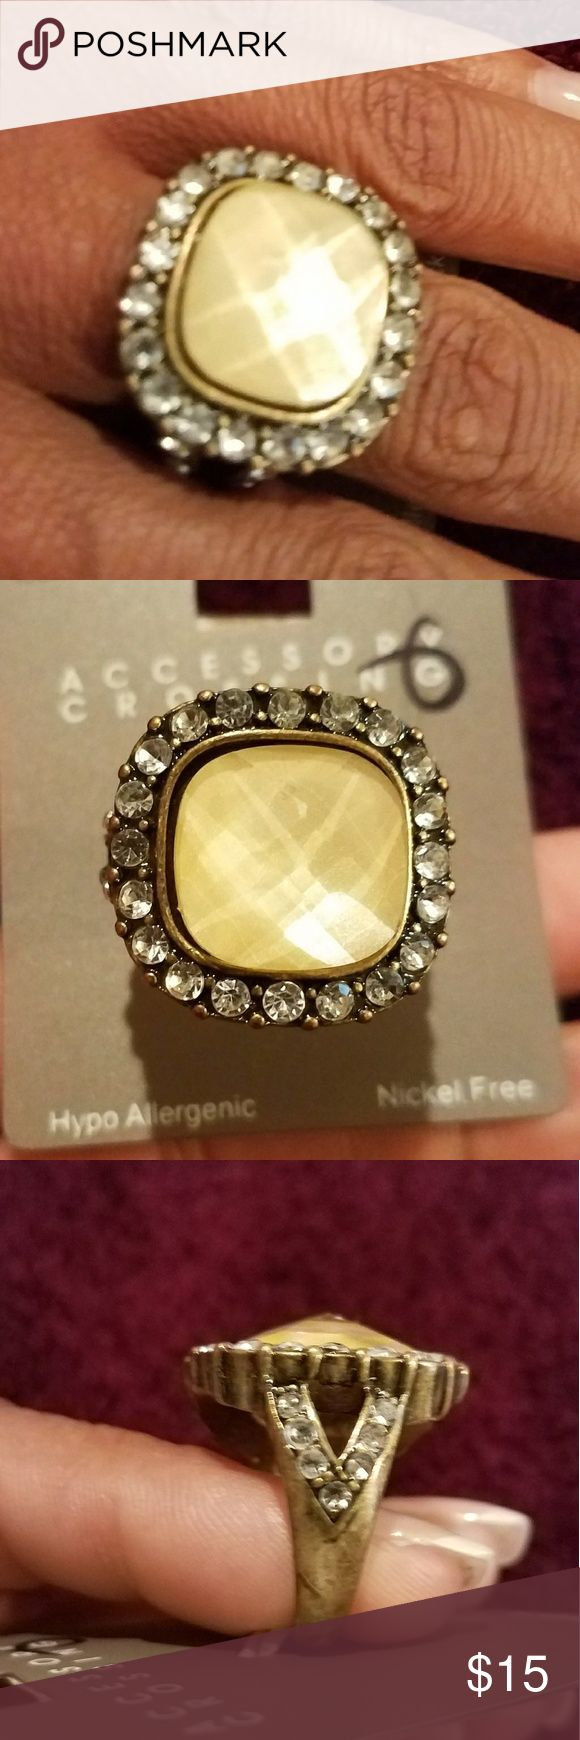 NWOT. Boutique costume jewelry ring NWOT. Costume jewelry ring. Light yellowish color stone with accent looking rhinestone around it. Also has accent looking rhinestones on V-style sides of the ring. Boutique Jewelry Rings